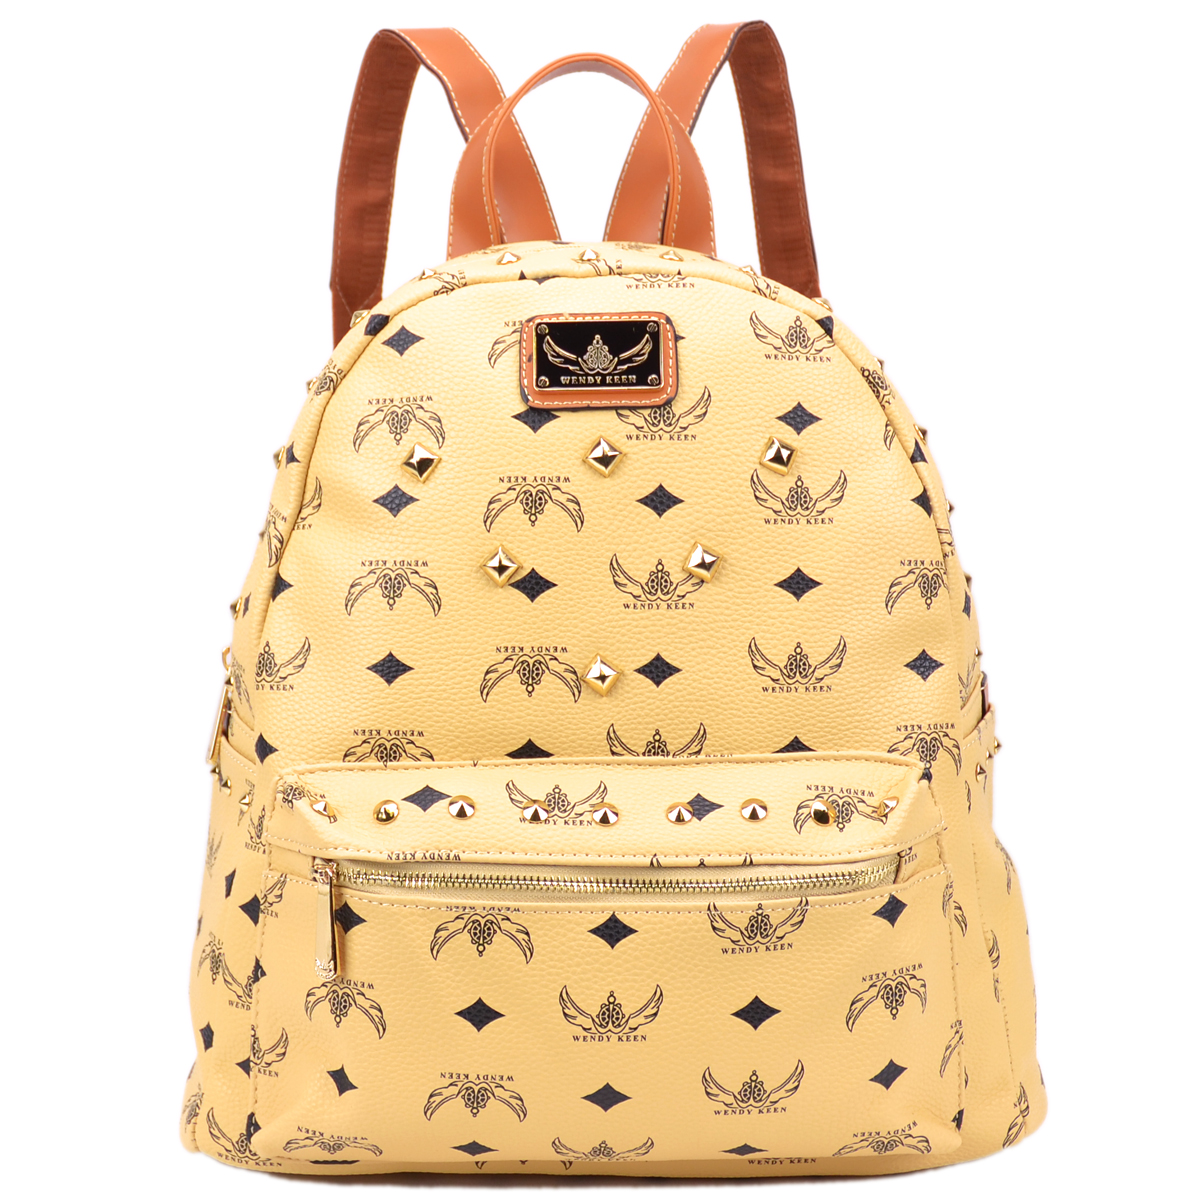 Wendy Keen Monogram Studded Backpack